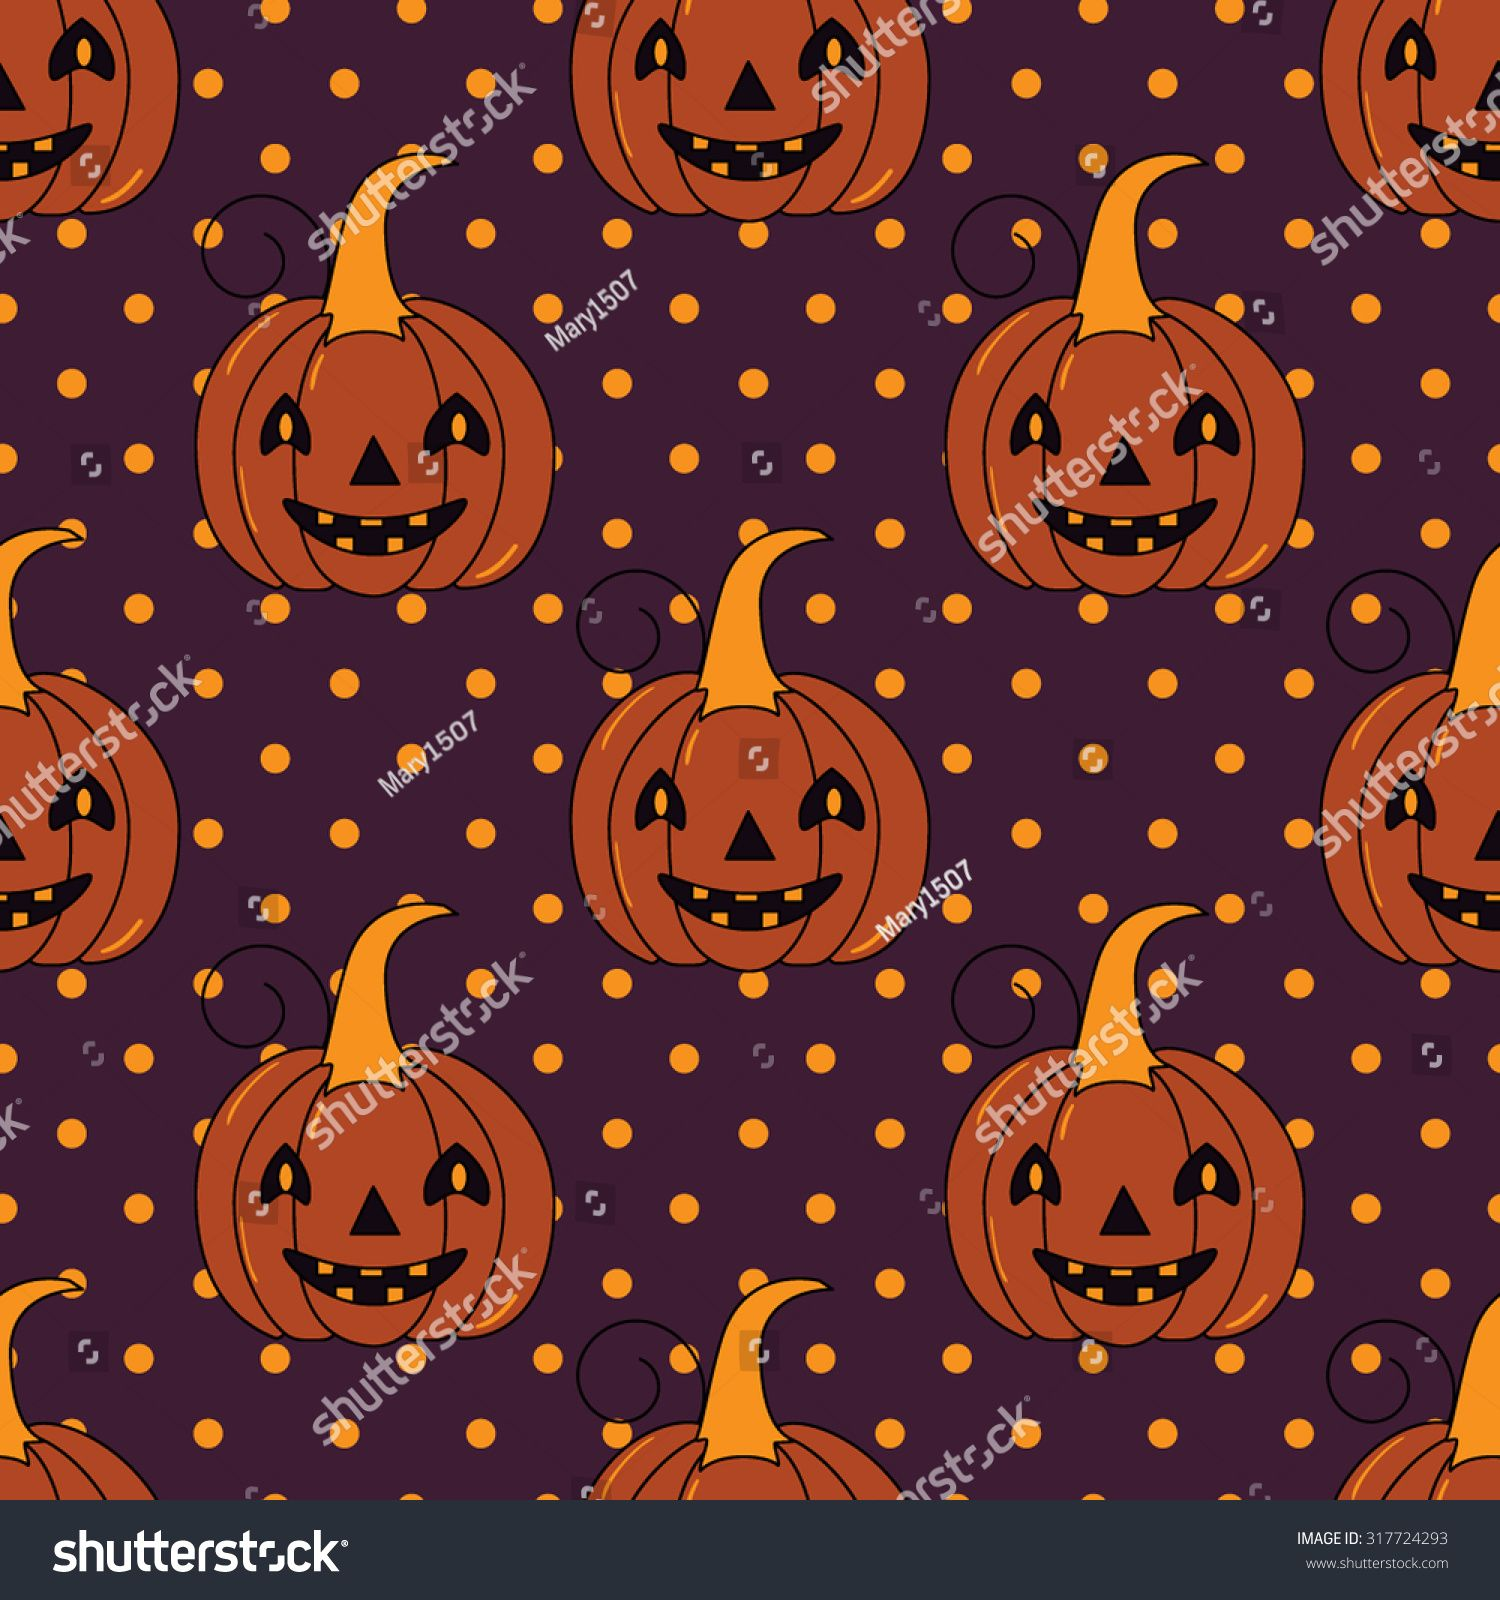 Seamless Halloween Pattern Flat Style Endless Texture Use For Wallpaper Textiles Pattern Fills Web Page Background Ad In 2020 Halloween Patterns Wallpaper Art